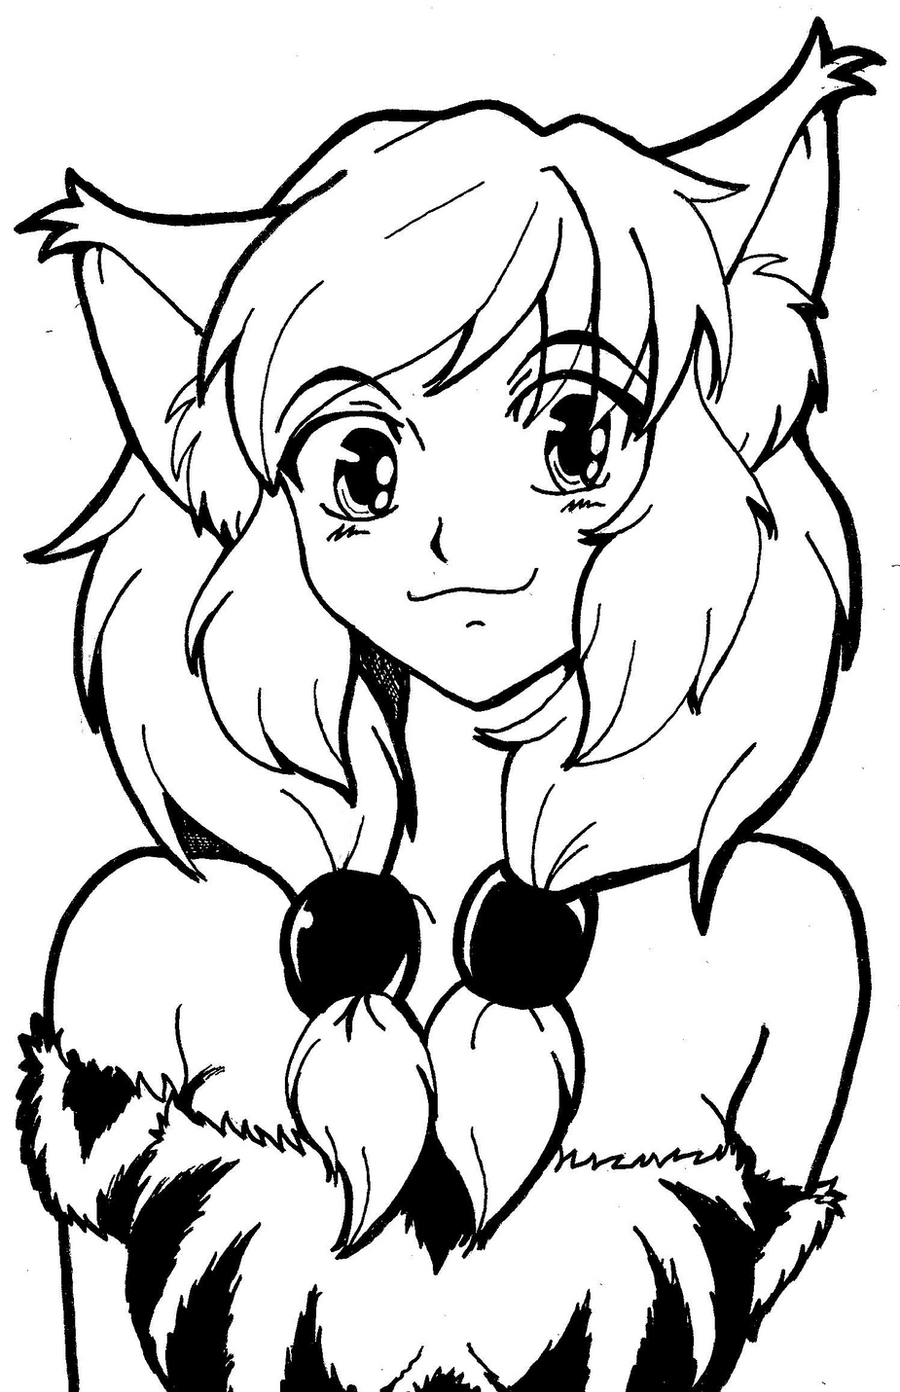 Spinosaurus coloring pages getcoloringpages com - Cute Anime Cat Girls Coloring Pages Bing Images